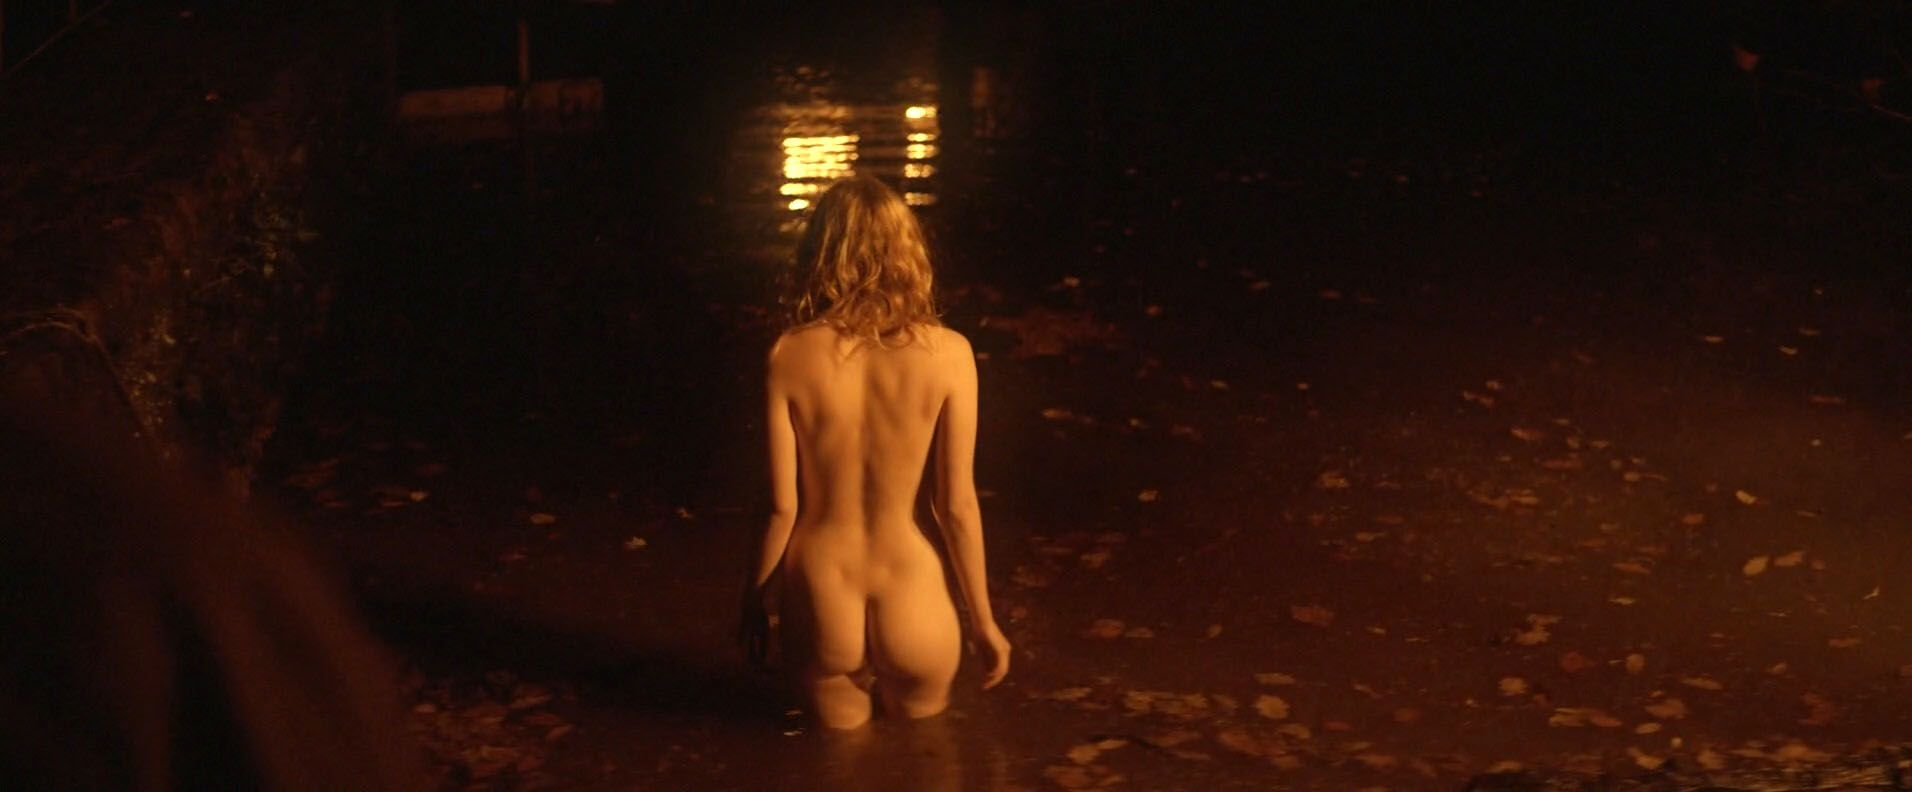 Hannah-Murray-Elinor-Crawley-Nude-6